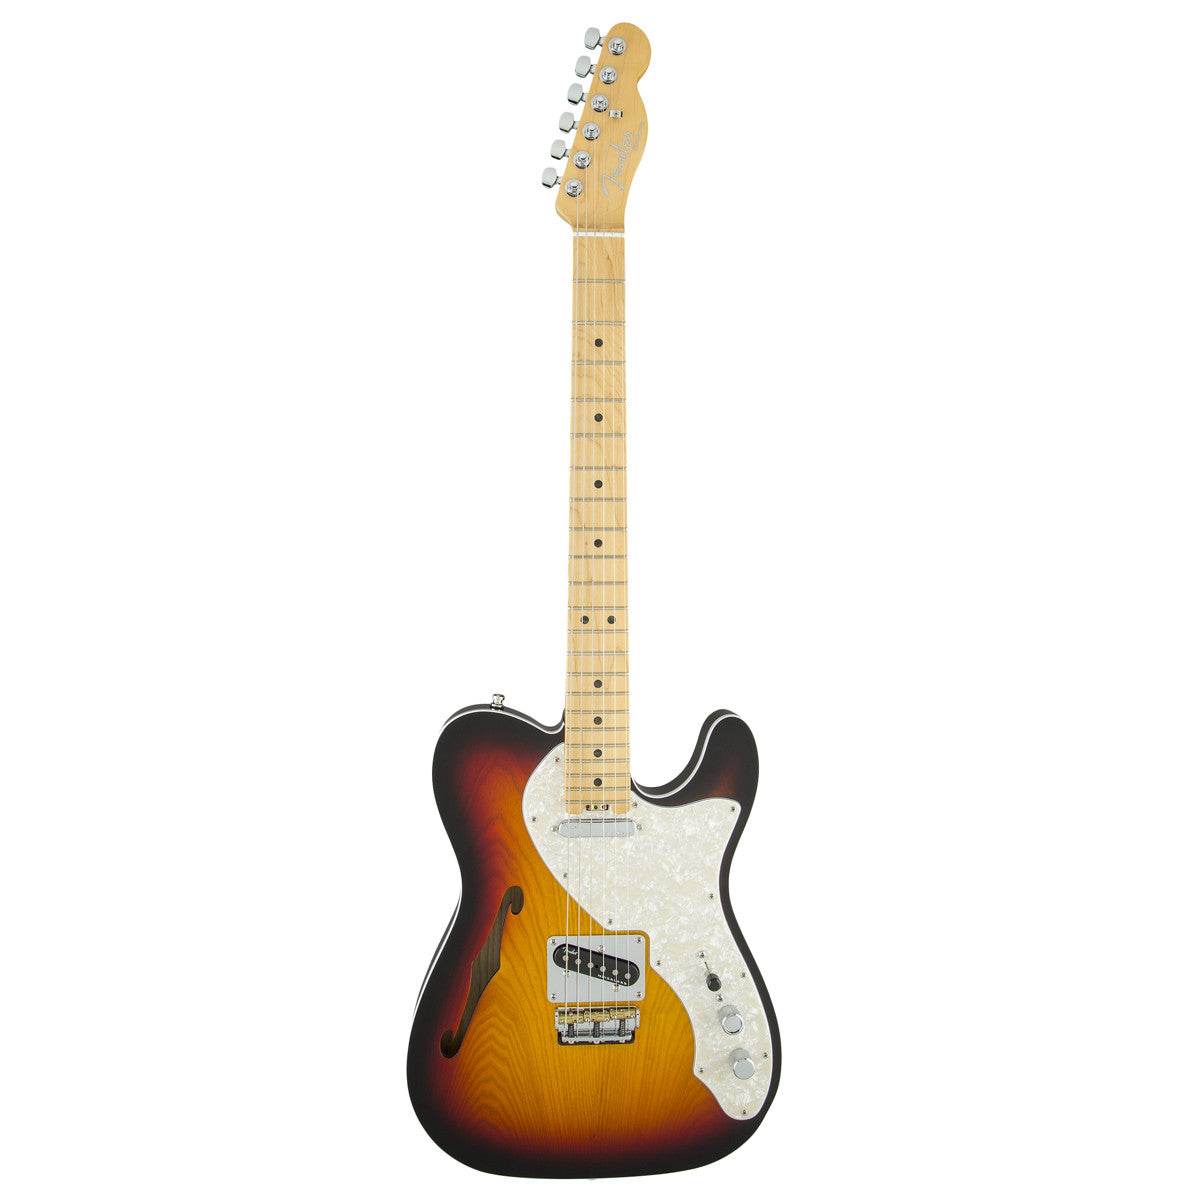 Fender American Elite Telecaster Thinline, Maple, 3-Tone Sunburst - Vintage Guitar Boutique - 2